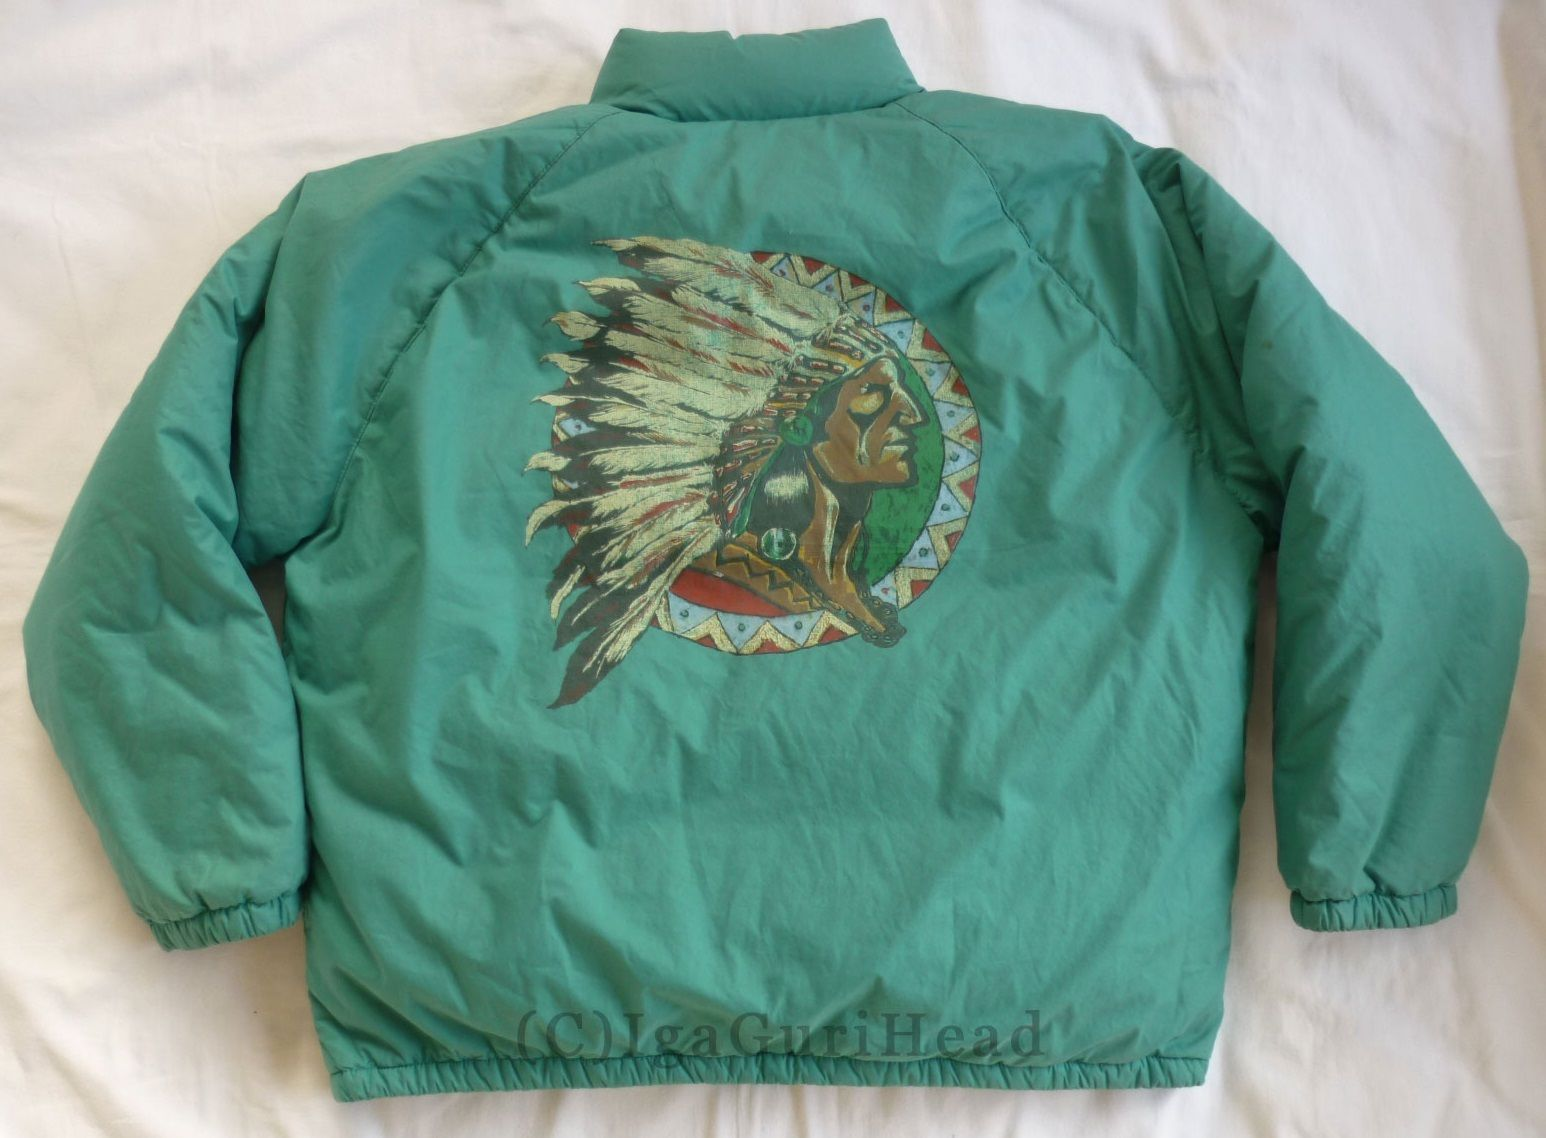 Head LifeAnd Polo Indian Vintage JacketrareLo Ralph Lauren fvYbg76y